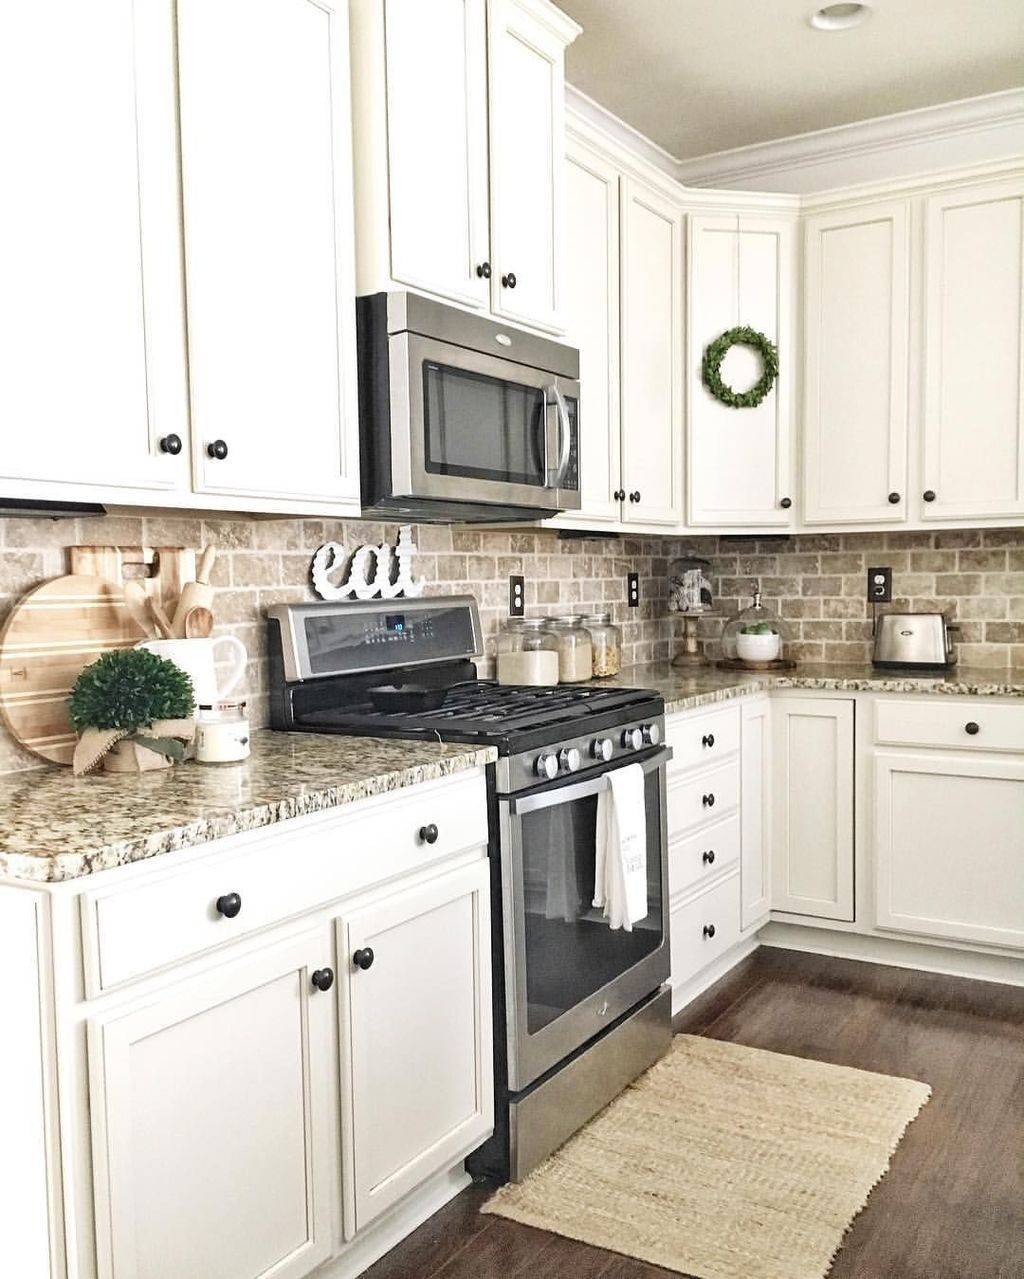 30+ Captivating White Cabinets Design Ideas For Kitchen - Kitchen design, White kitchen design, Kitchen renovation, Kitchen redo, Kitchen remodel, New kitchen - White cabinets are standard in many kitchens  You might not want to repaint but you want to get a different …